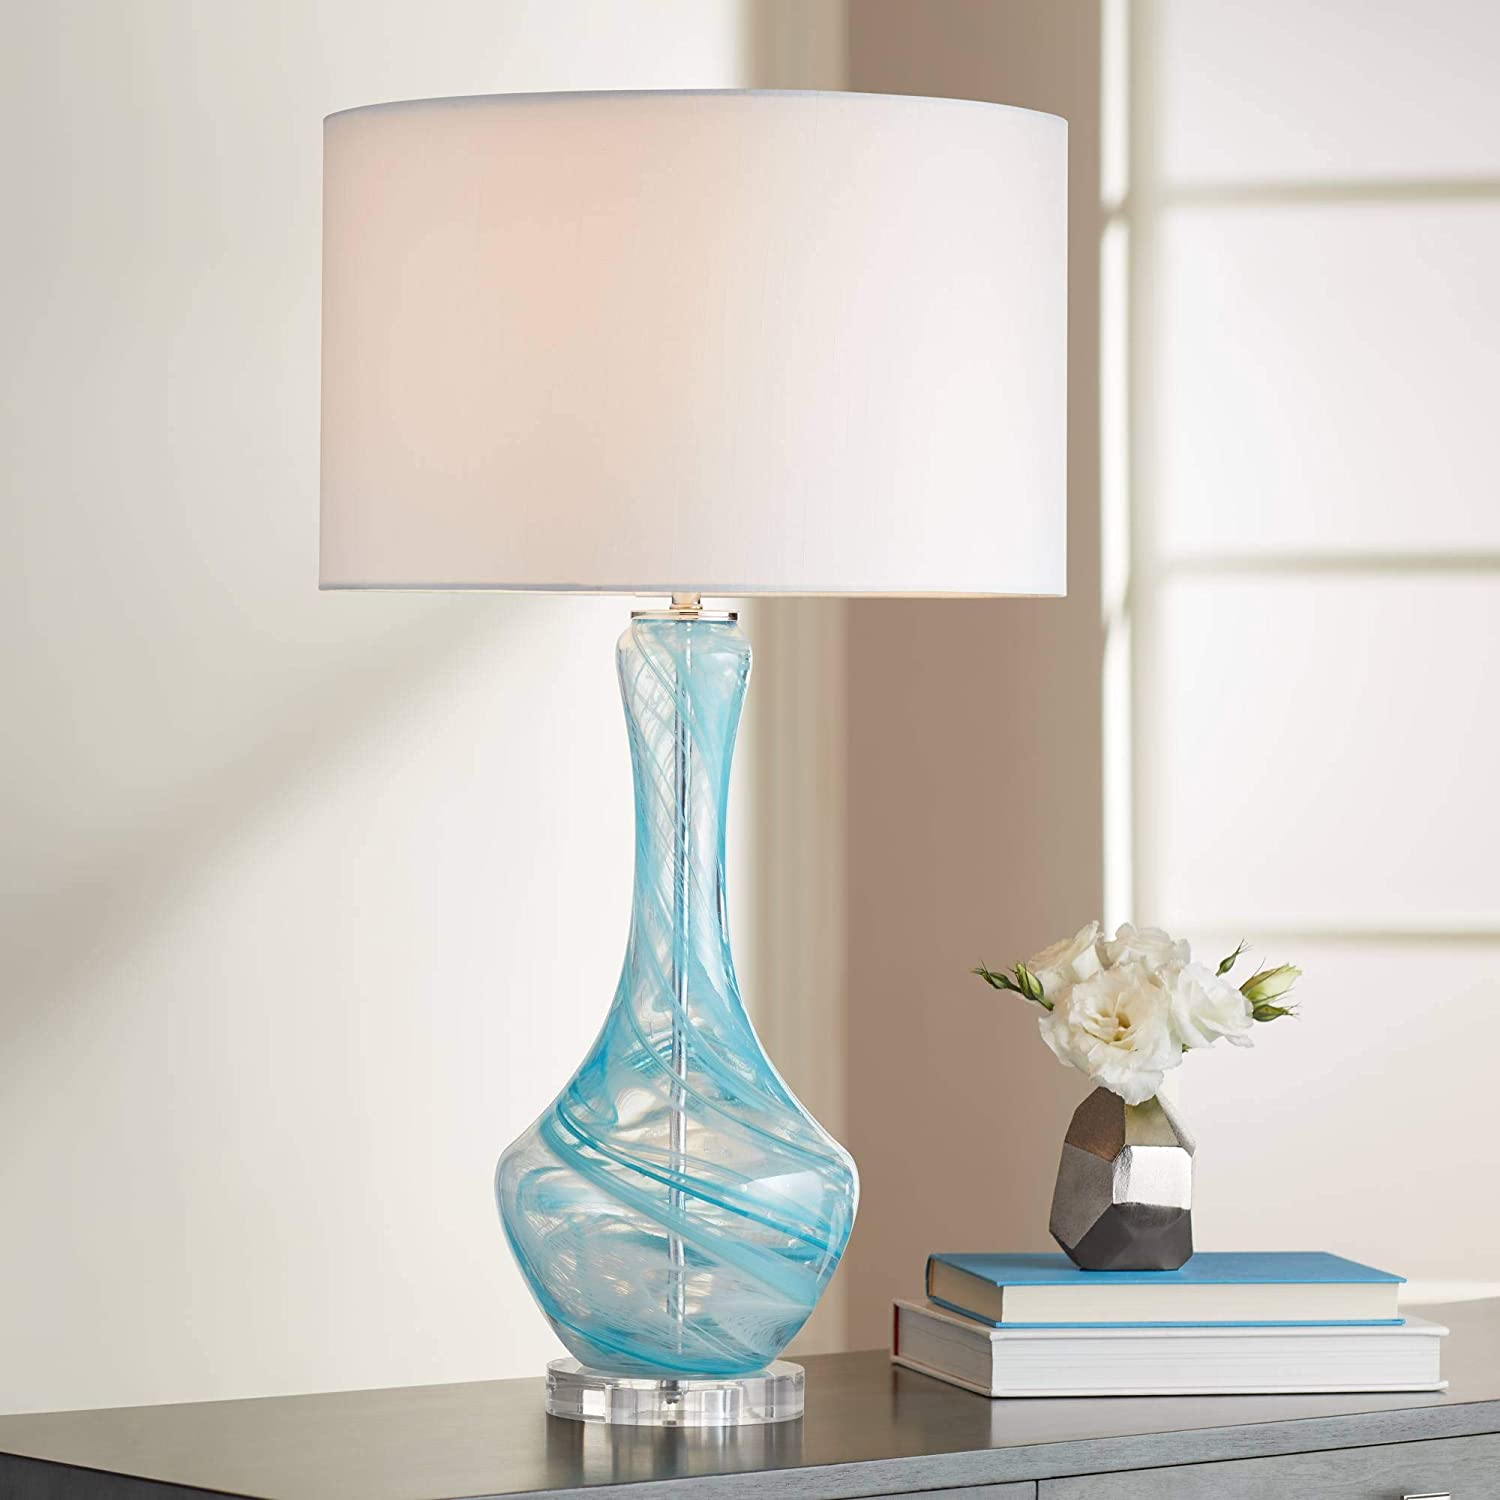 Codie Modern Contemporary Style Table Lamp Clear Blue Swirl Art Glass Gourd White Fabric Drum Shade Decor for Living Room Bedroom House Bedside Nightstand Home Office Family - Possini Euro Design